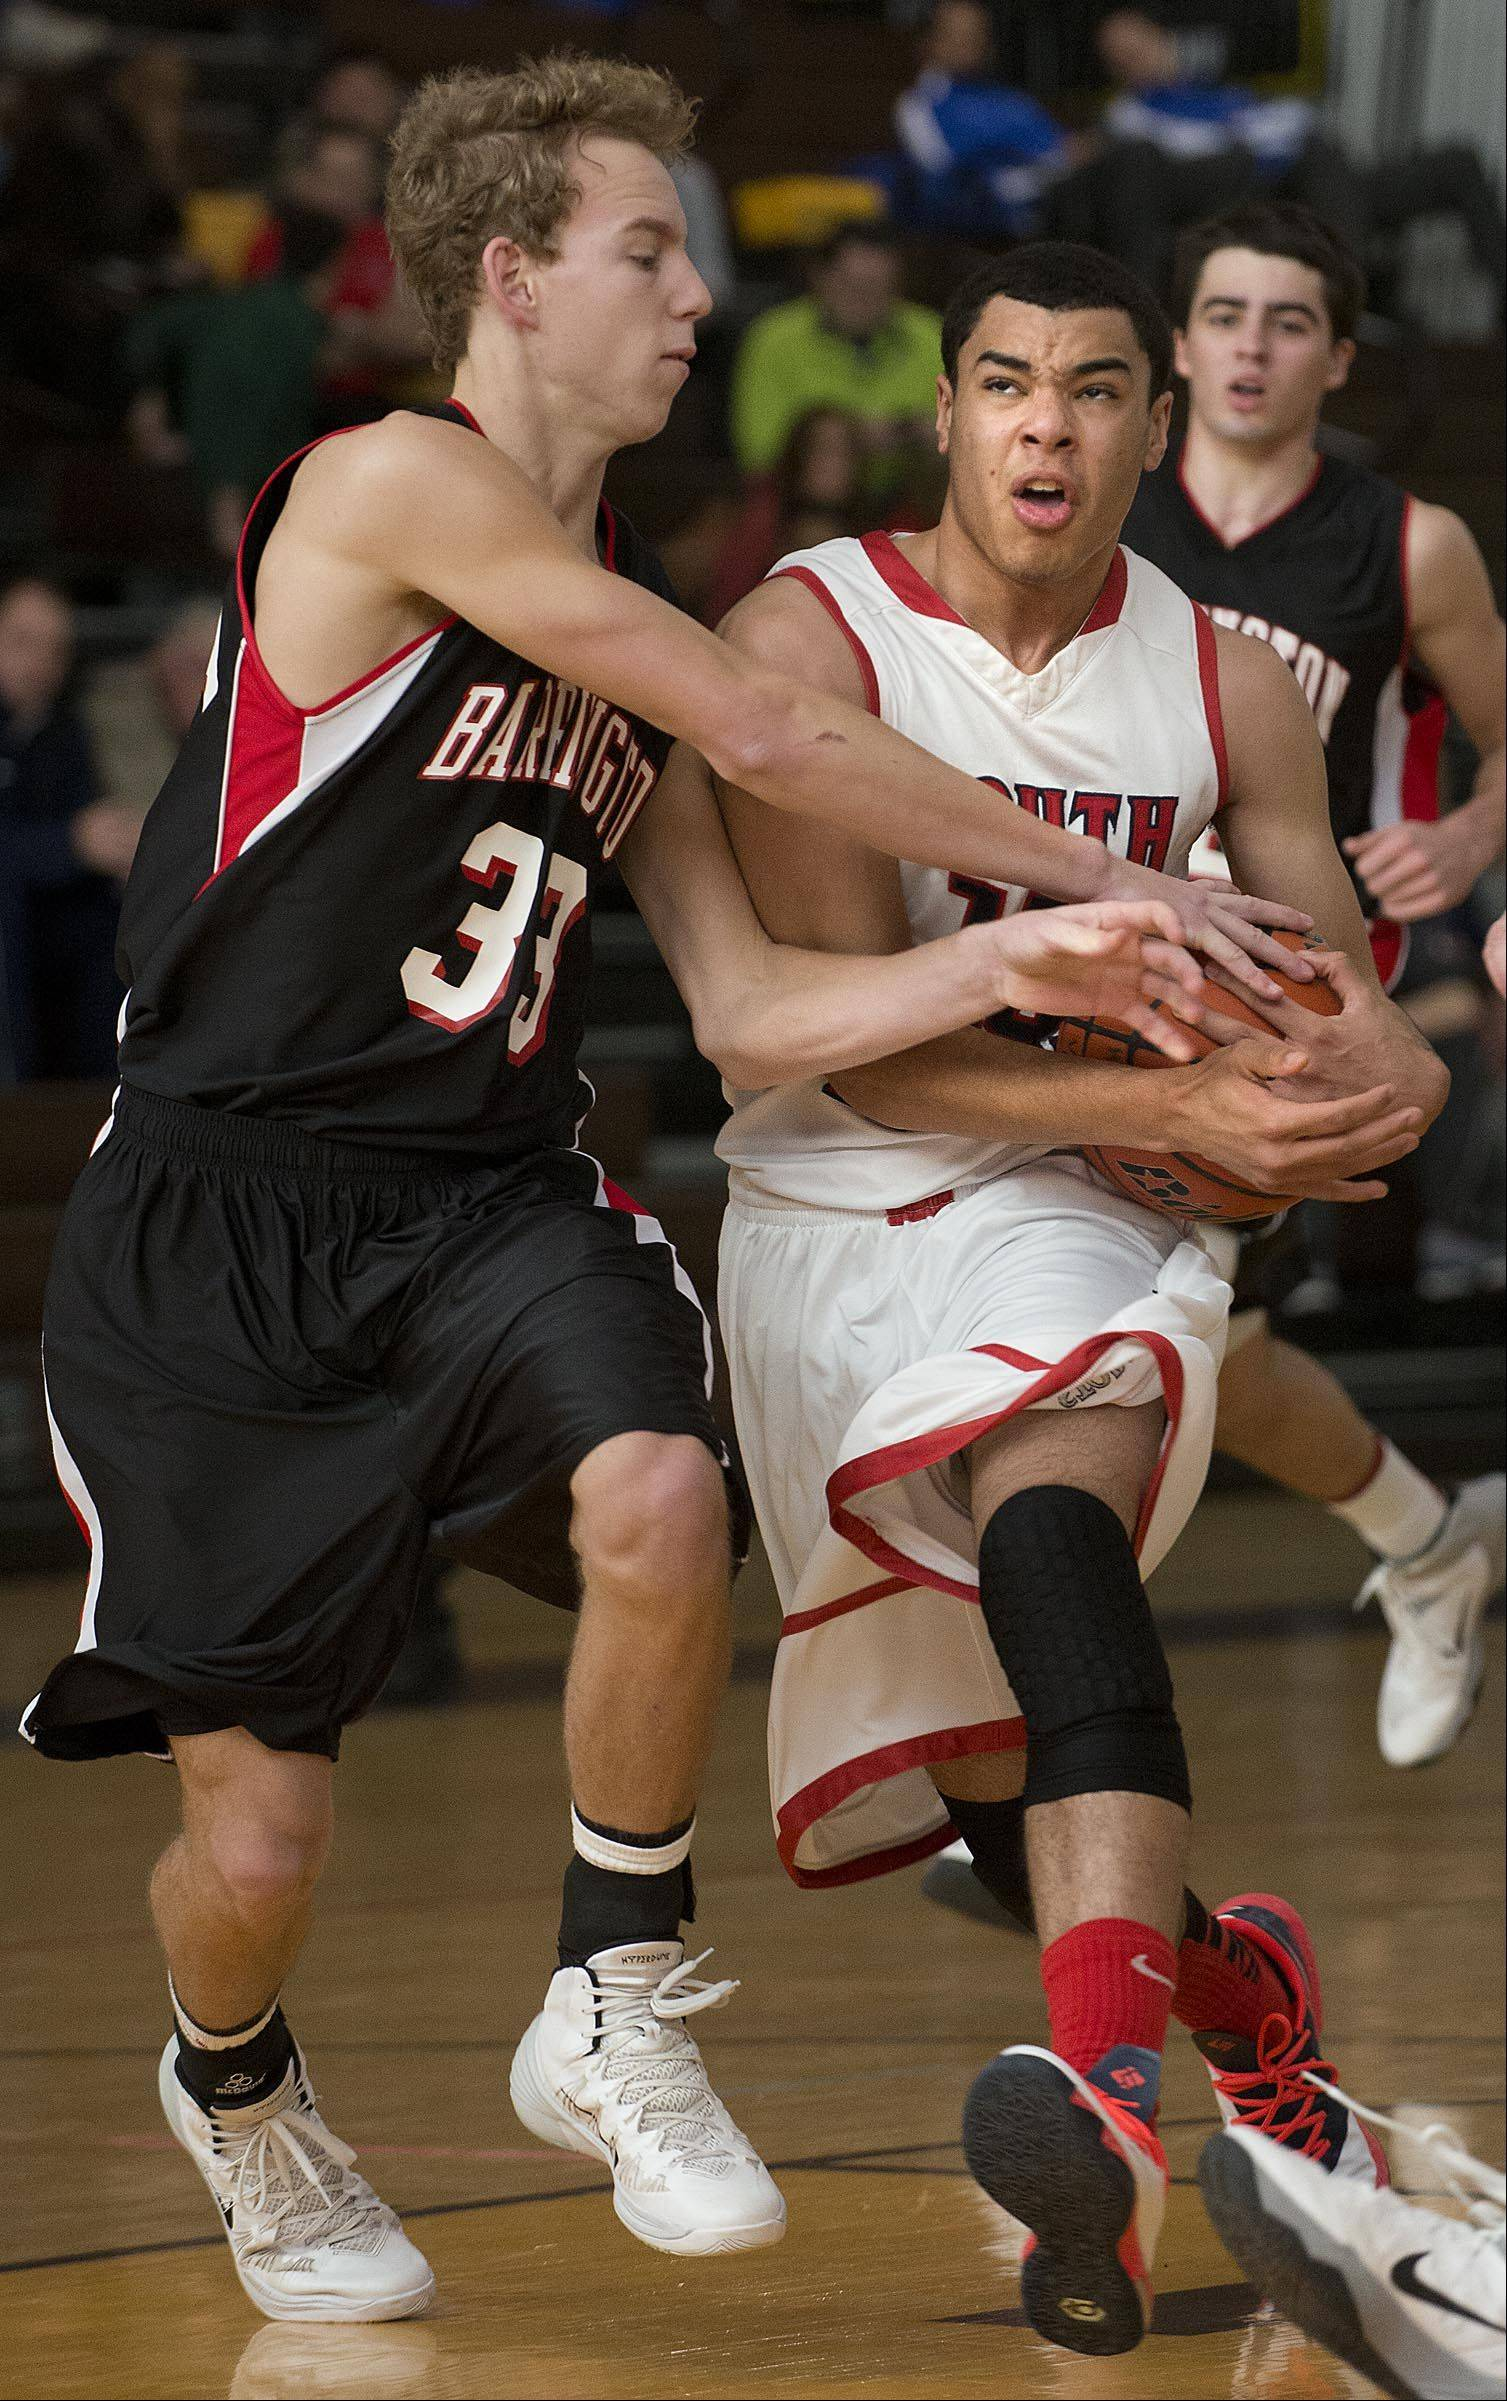 Barrington's Scott Bennett reaches to try to stop South Elgin's Matthew Smith Monday at the Hinkle Holiday Classic at Jacobs High School in Algonquin.